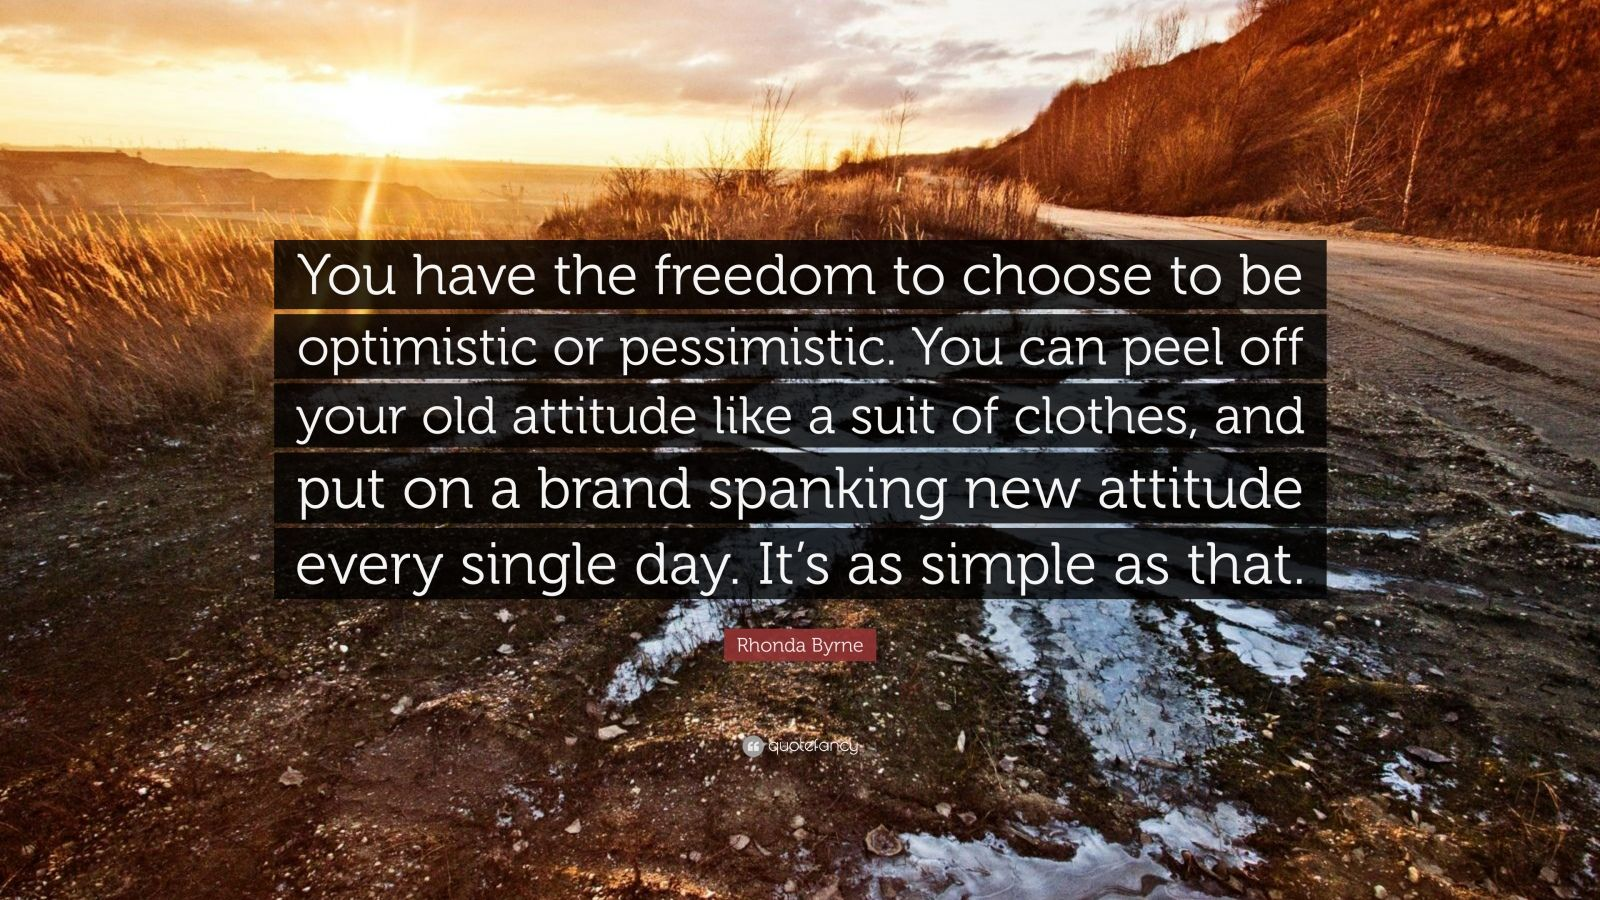 """Rhonda Byrne Quote: """"You have the freedom to choose to be optimistic or pessimistic. You can peel off your old attitude like a suit of clothes, and put on a brand spanking new attitude every single day. It's as simple as that."""""""